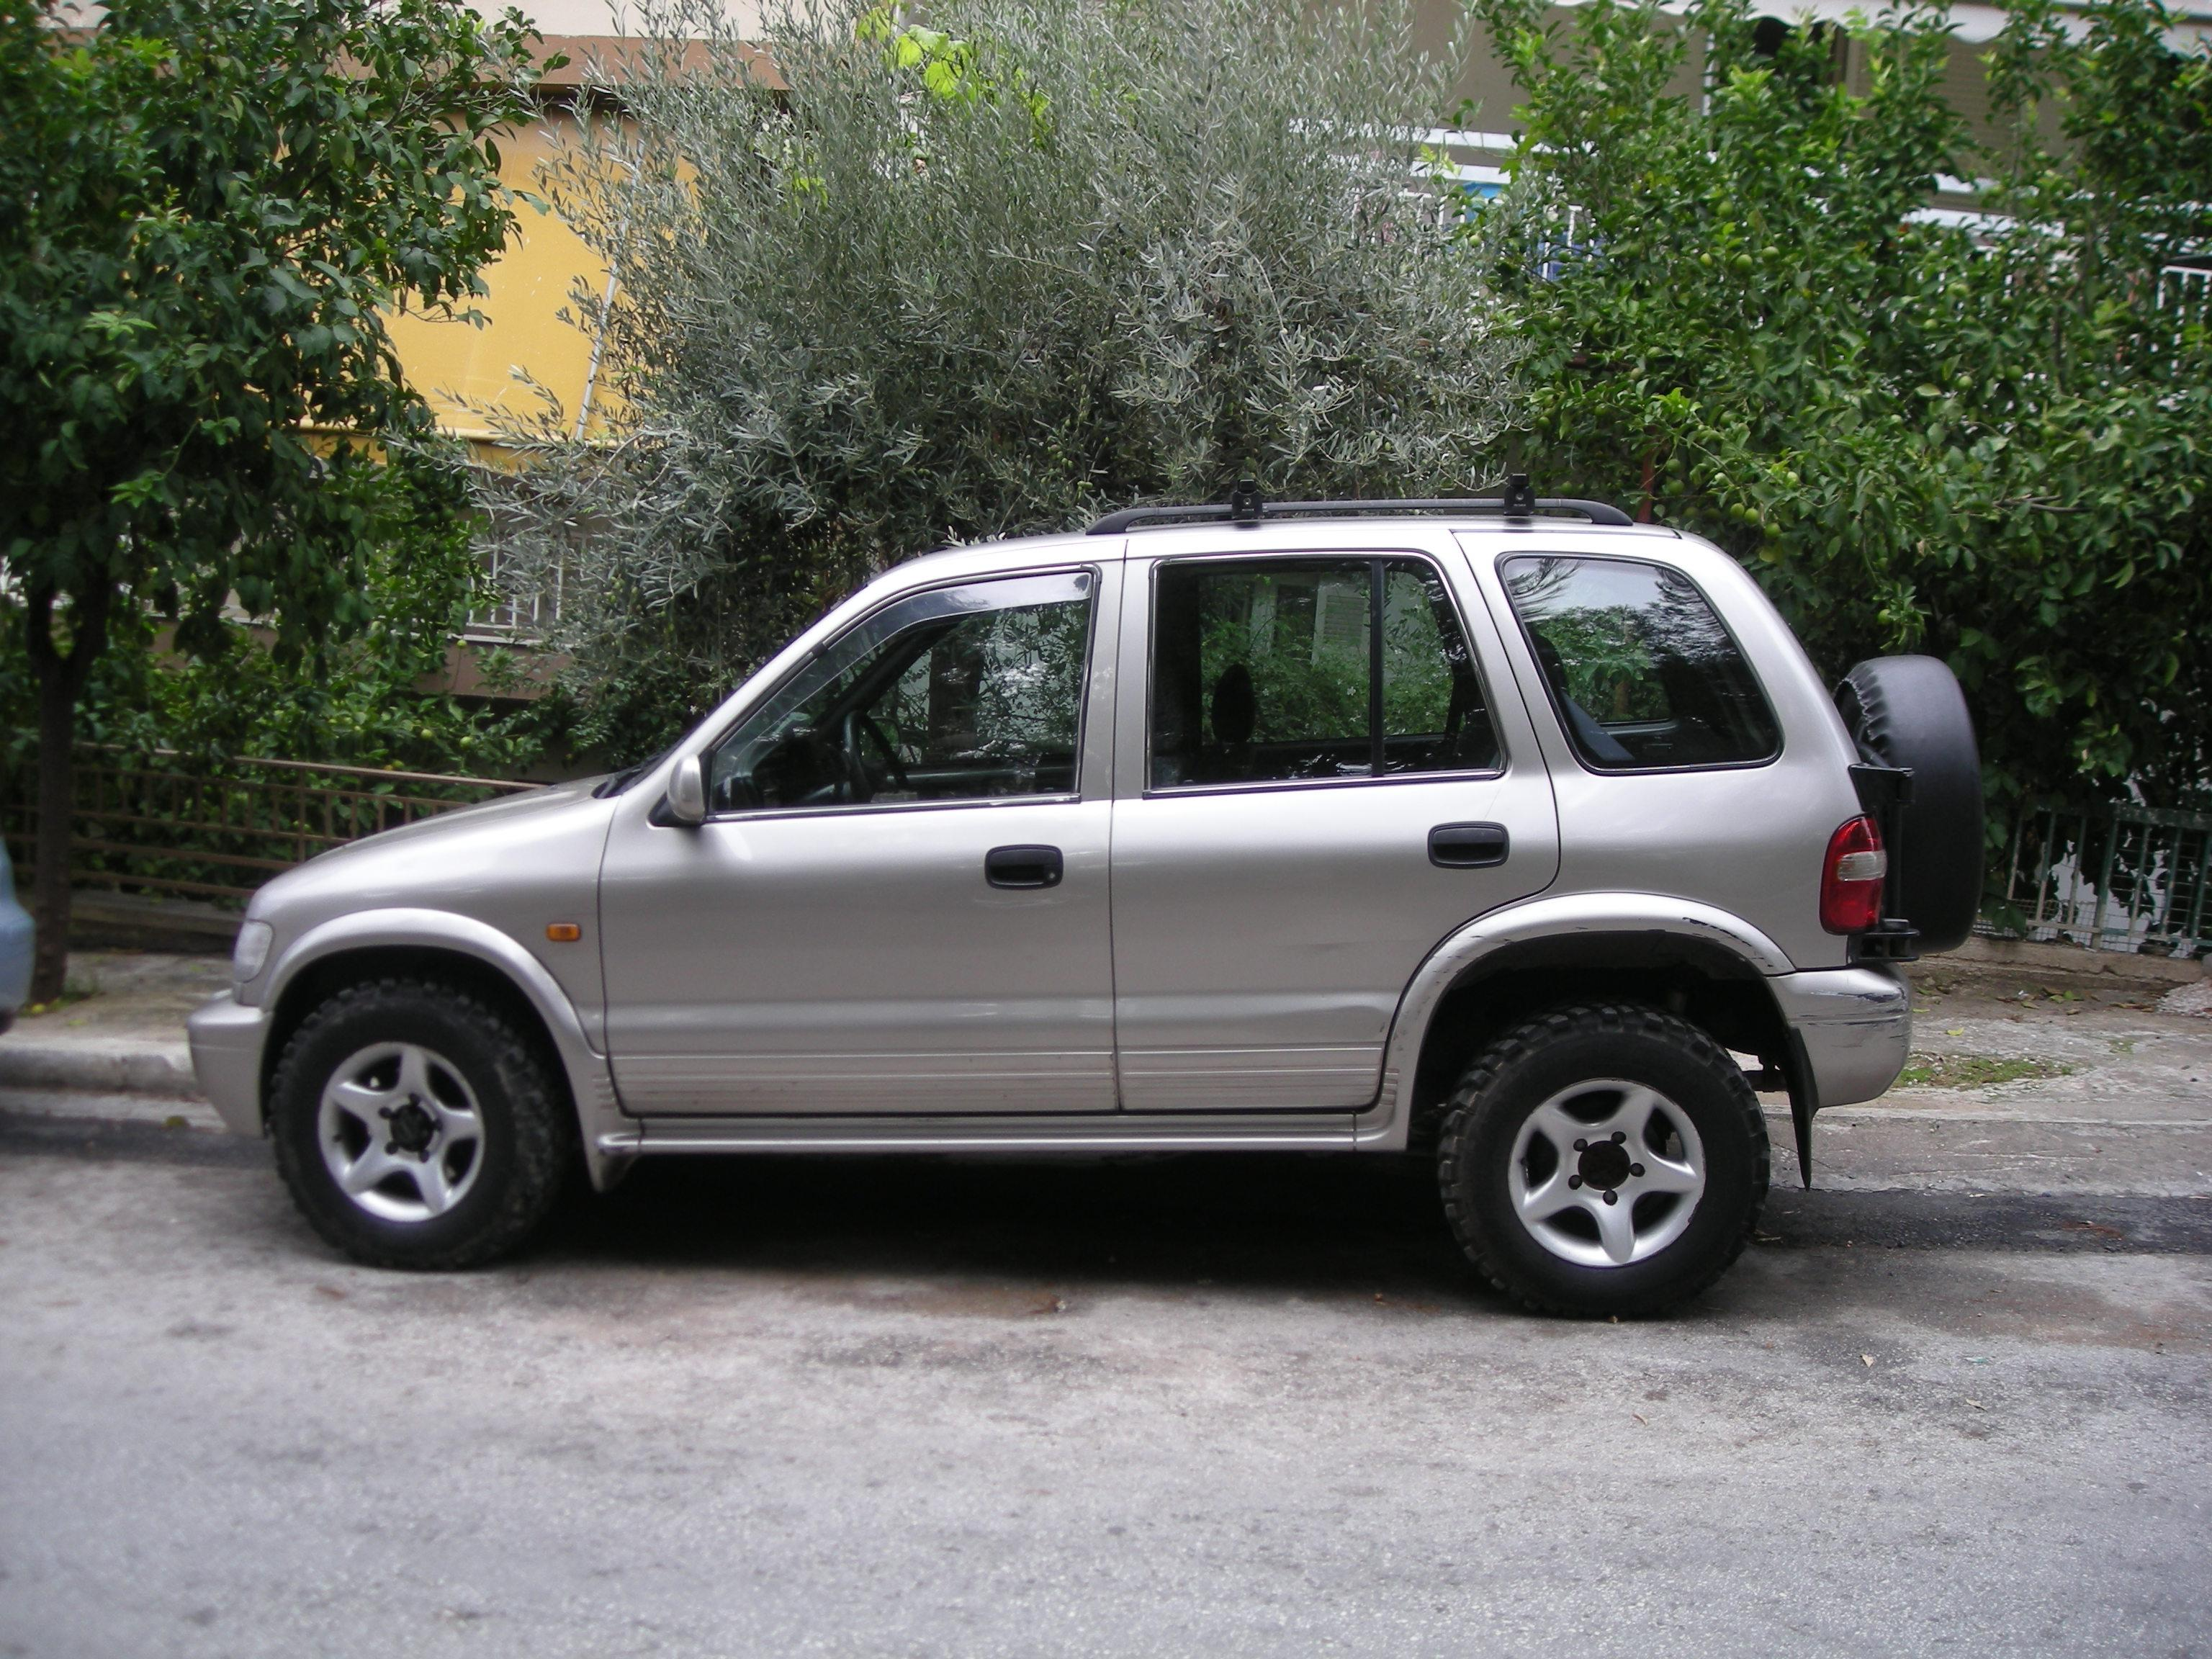 Download kia-sportage-1999-4.jpg